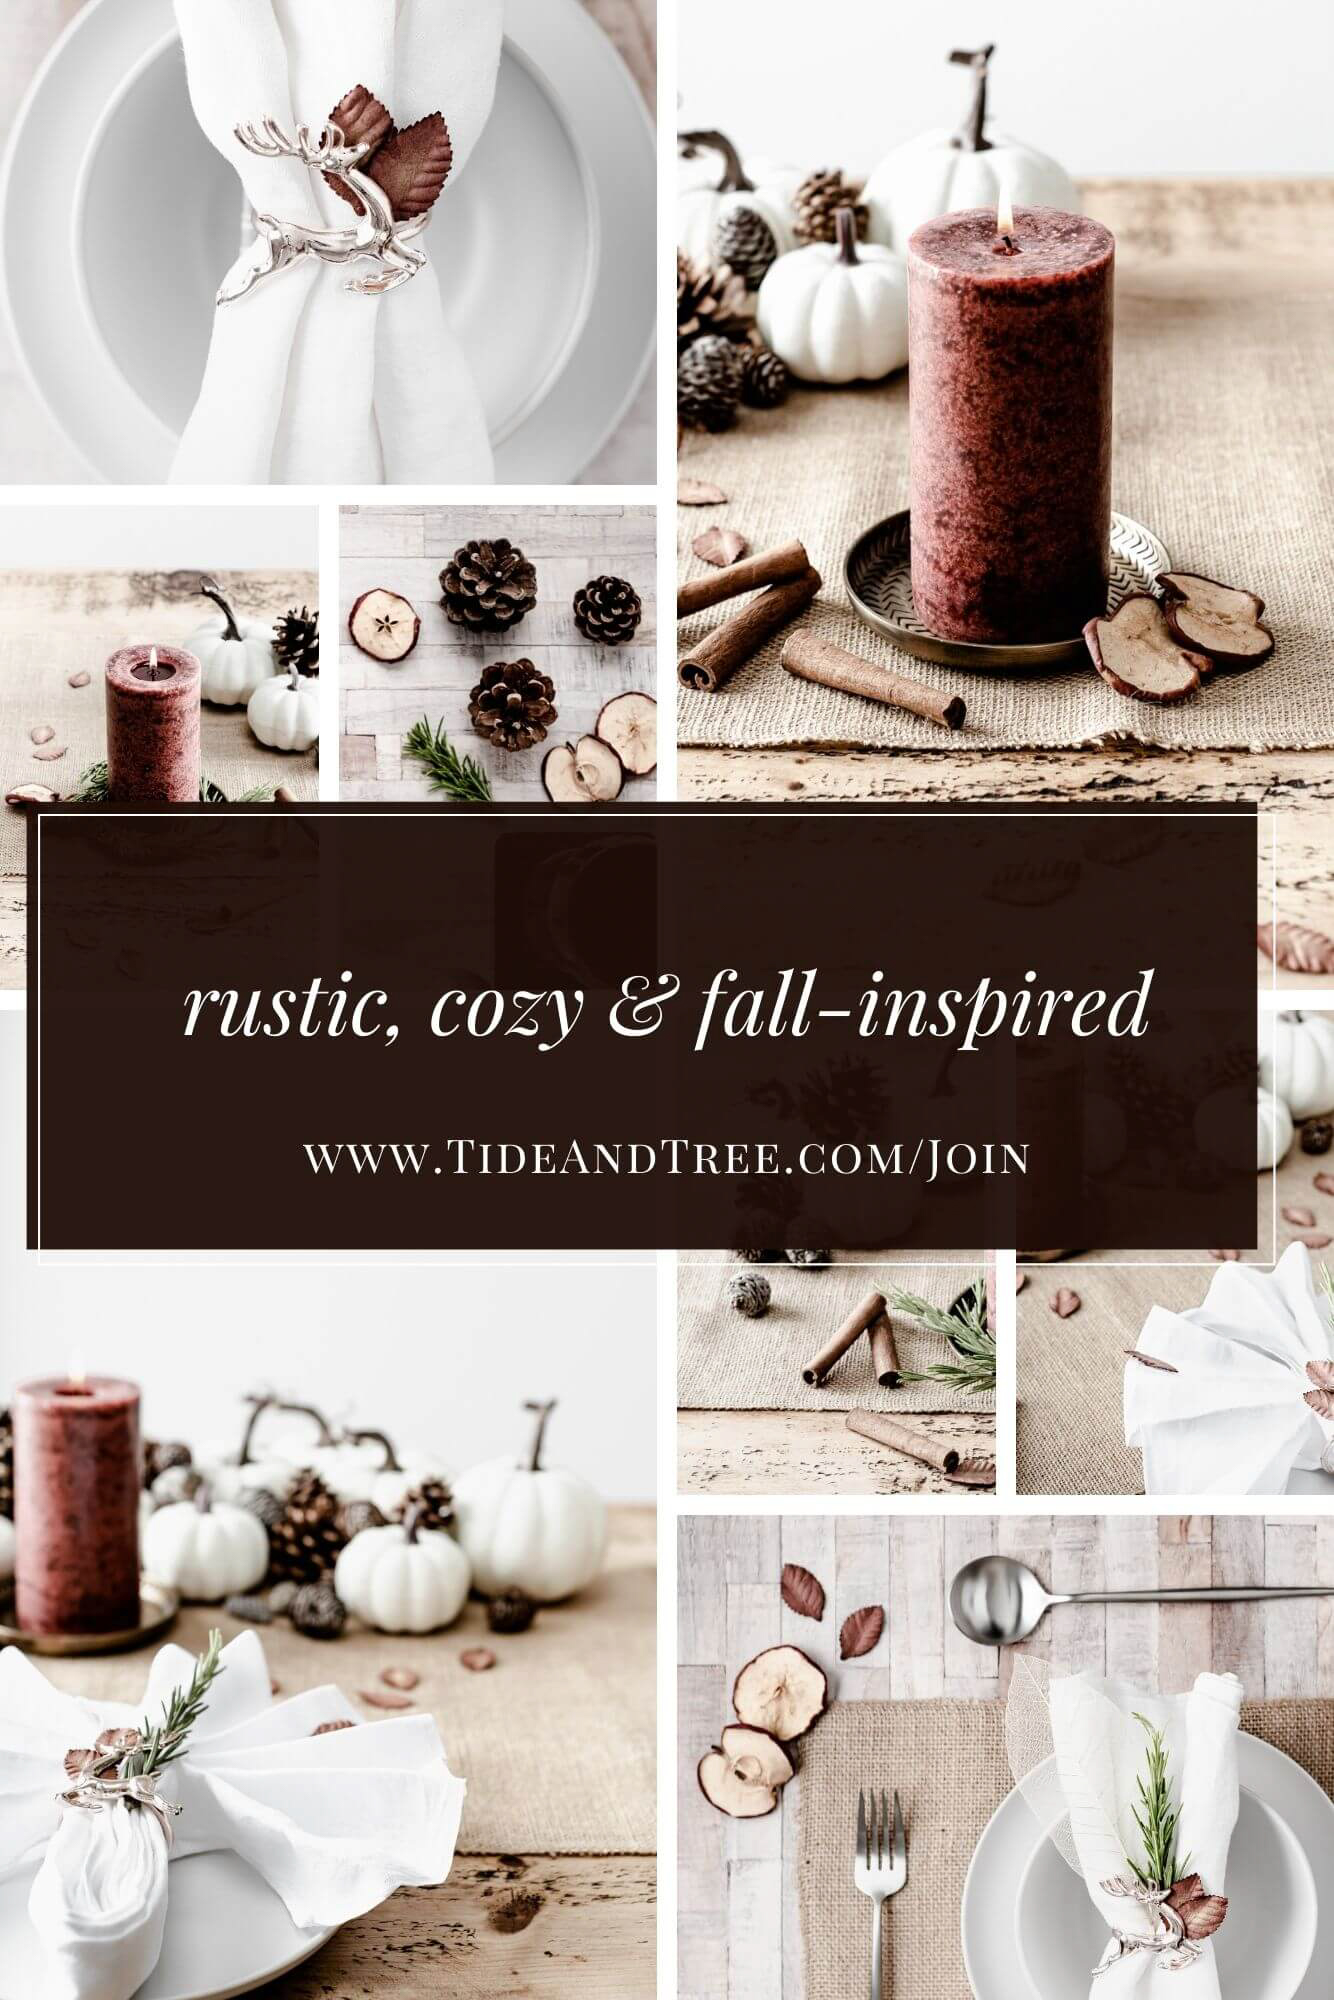 Rustic, cozy & fall-inspired